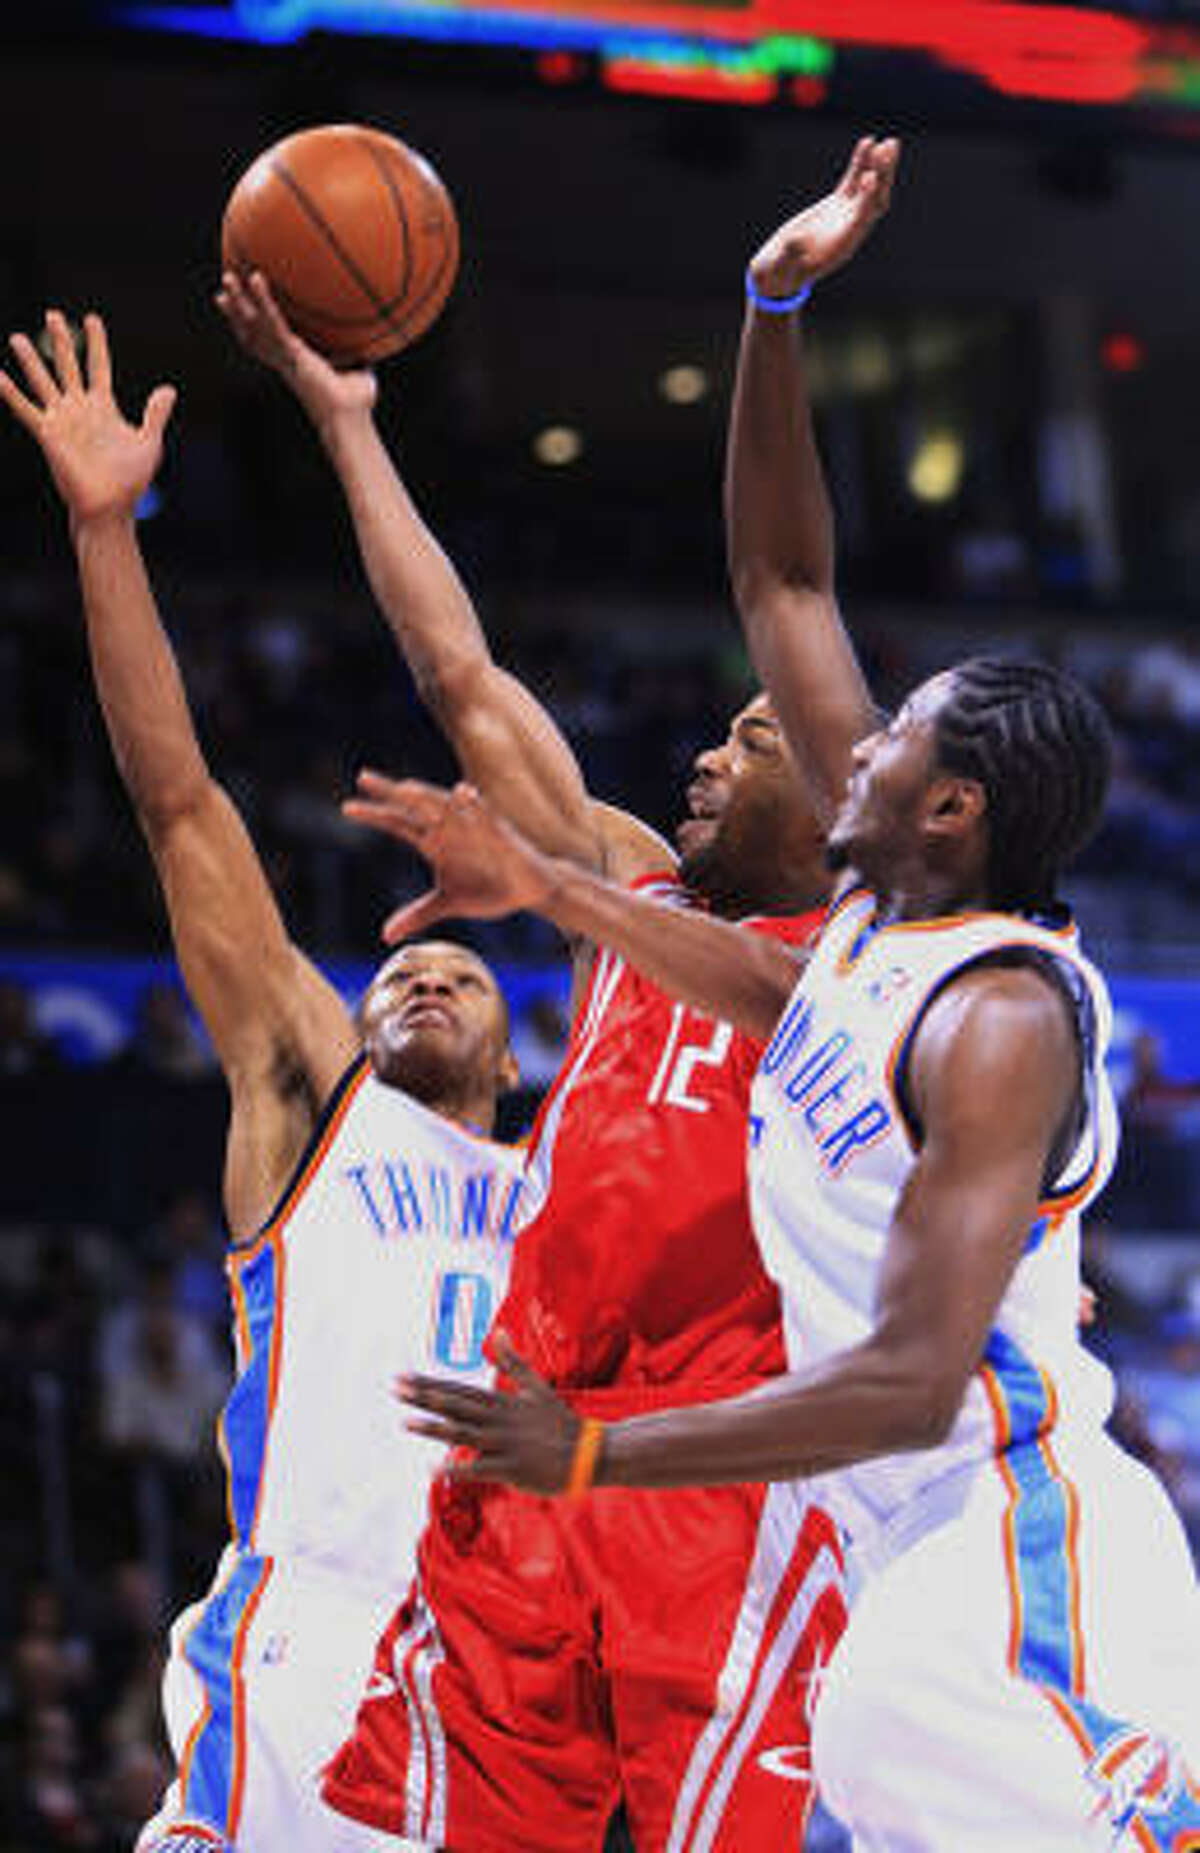 Rafer Alston, center, splits Thunder defenders Russell Westbrook, left, and guard Kyle Weaver on his way to the basket in the first quarter.